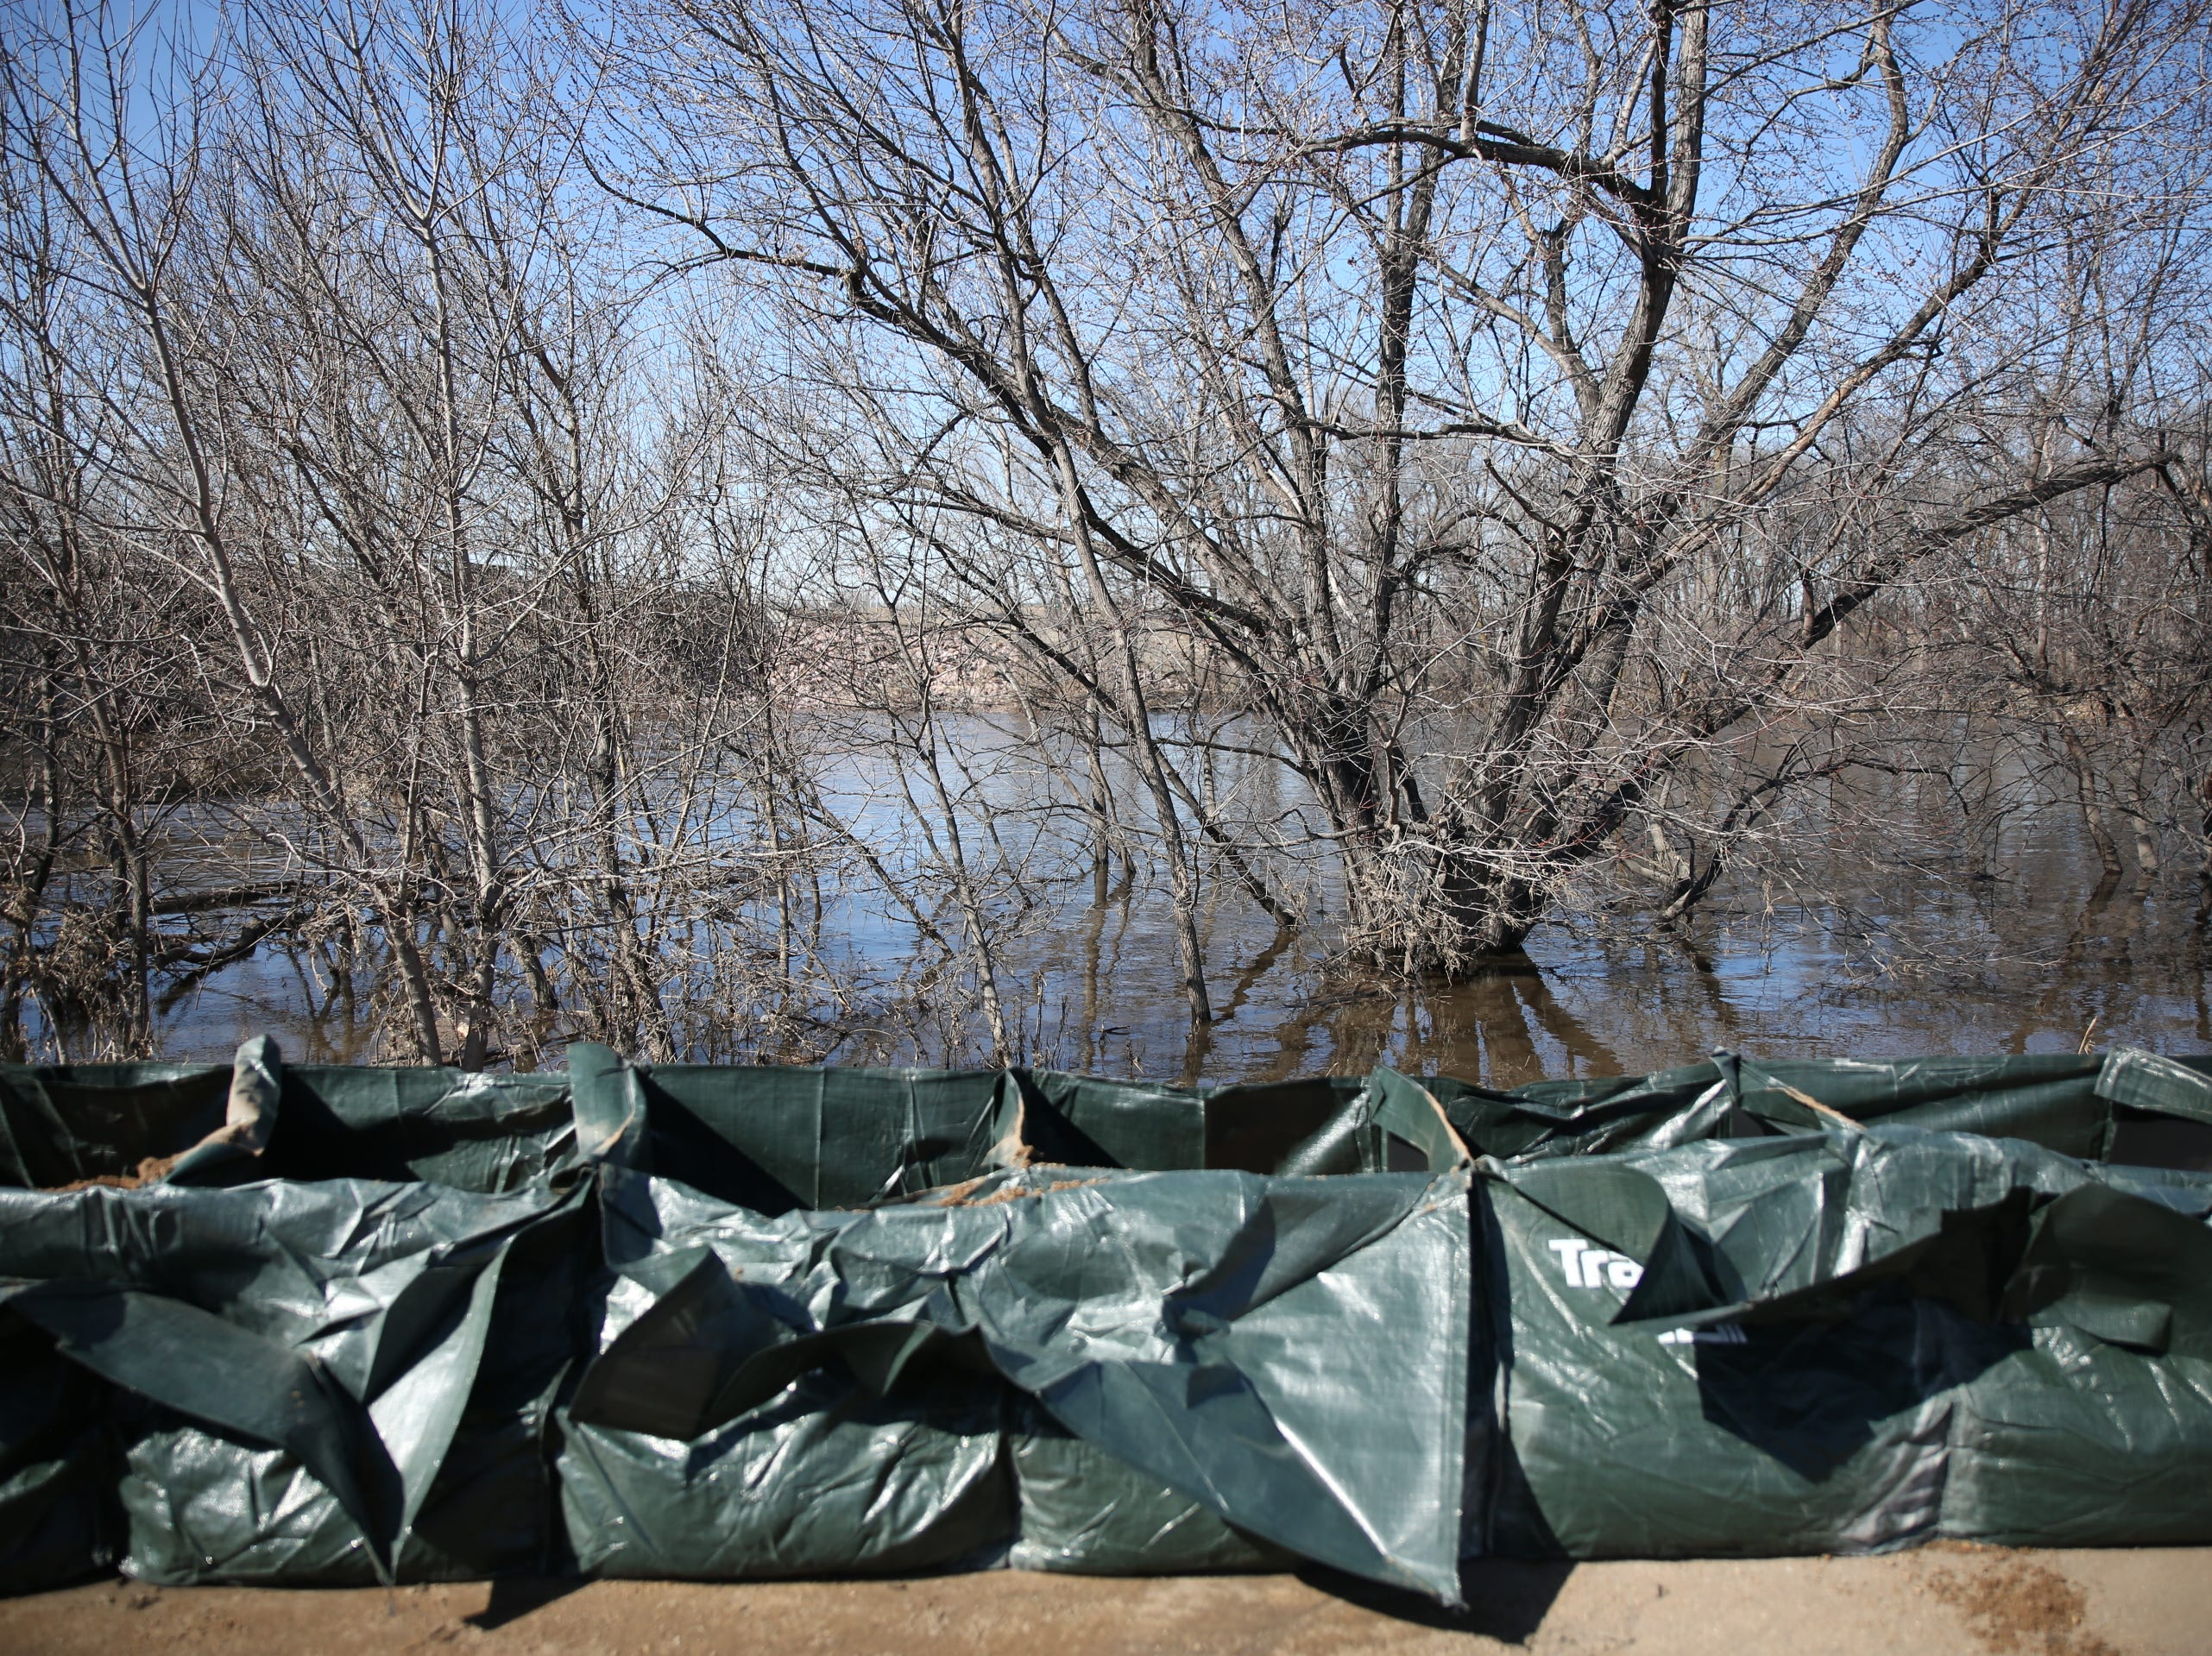 The City of Sioux Falls installed a trap bag system March 21, 2019 near the Lotta Street and Minnesota Avenue residential area in hopes of preventing flooding early next week. The trap bag system is a wall of two-foot tall plastic bags filled with sand and open on the top to allow water to fill the bag before overflowing.